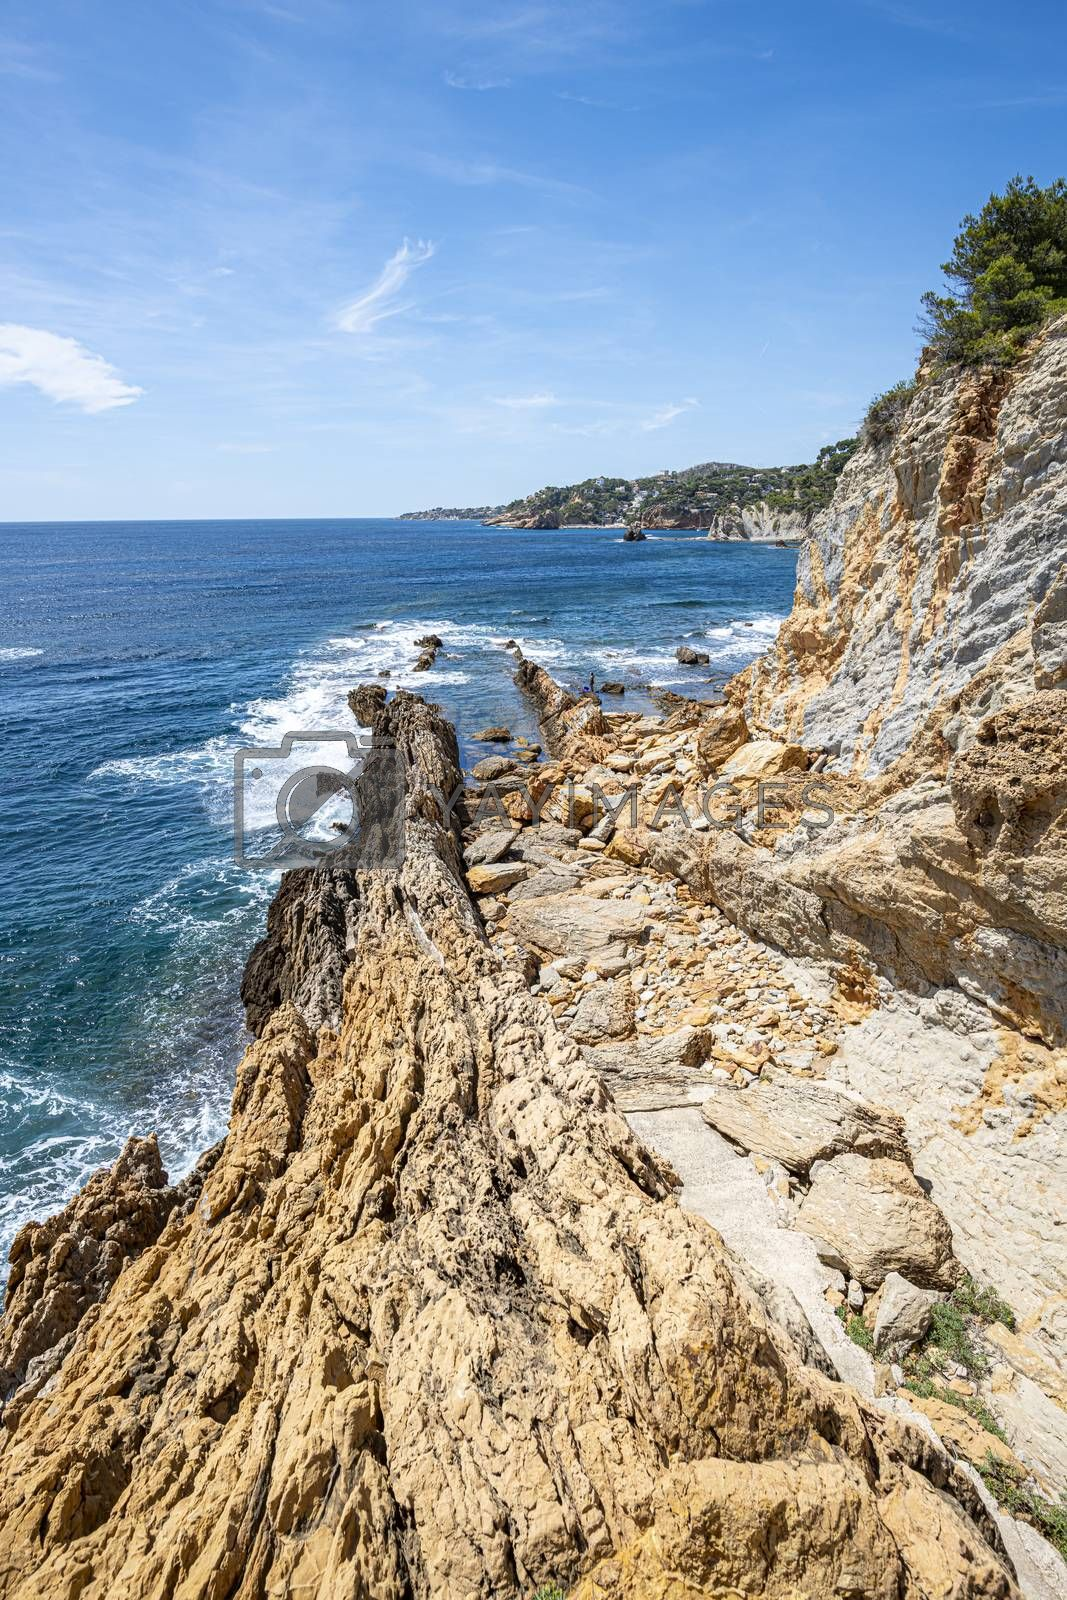 Landscape of Rocky area near the Mediterranean sea at the Calanque of Figuieres, creek of Figuieres, South of France, Europe